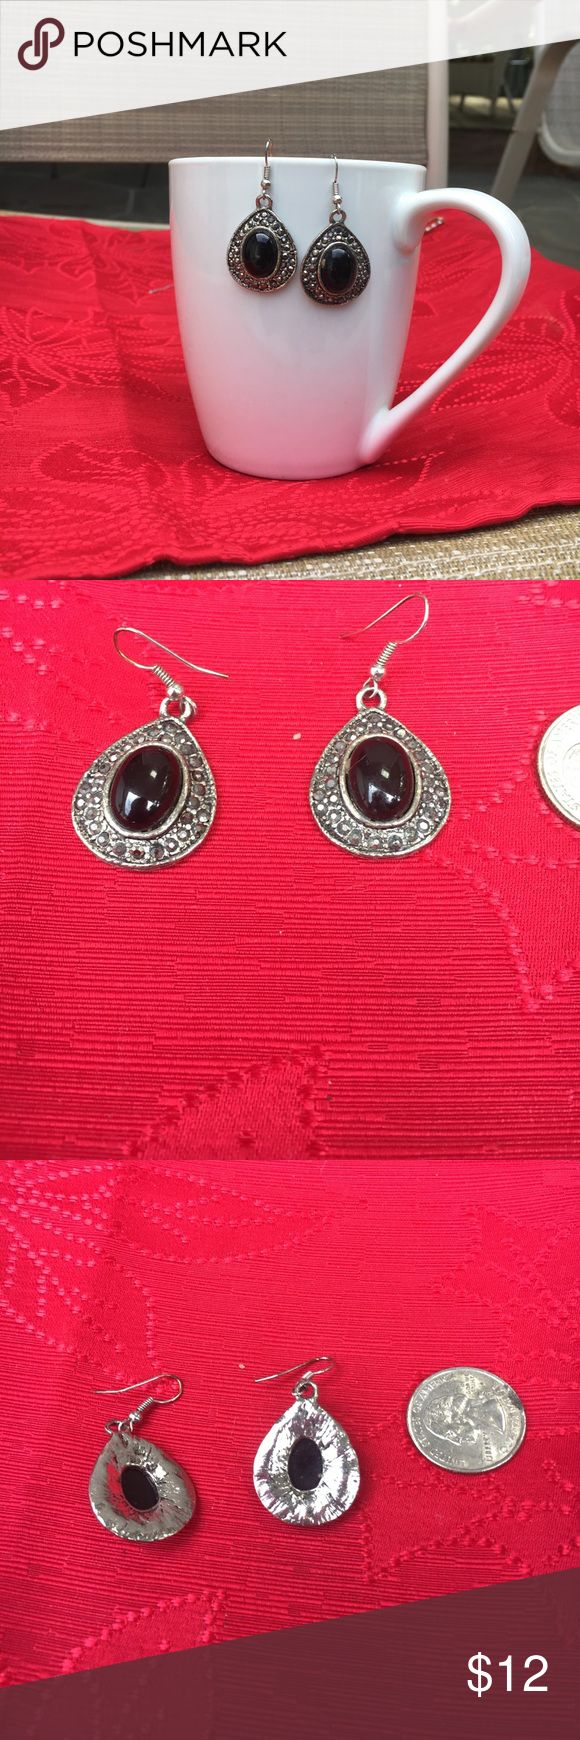 Festive silver tone earrings. Beautiful silver tone earrings with black stones in center and marcasite stones surrounding the large black stones. Shiny, hangs well, no stones missing, in excellent condition. Jewelry Earrings